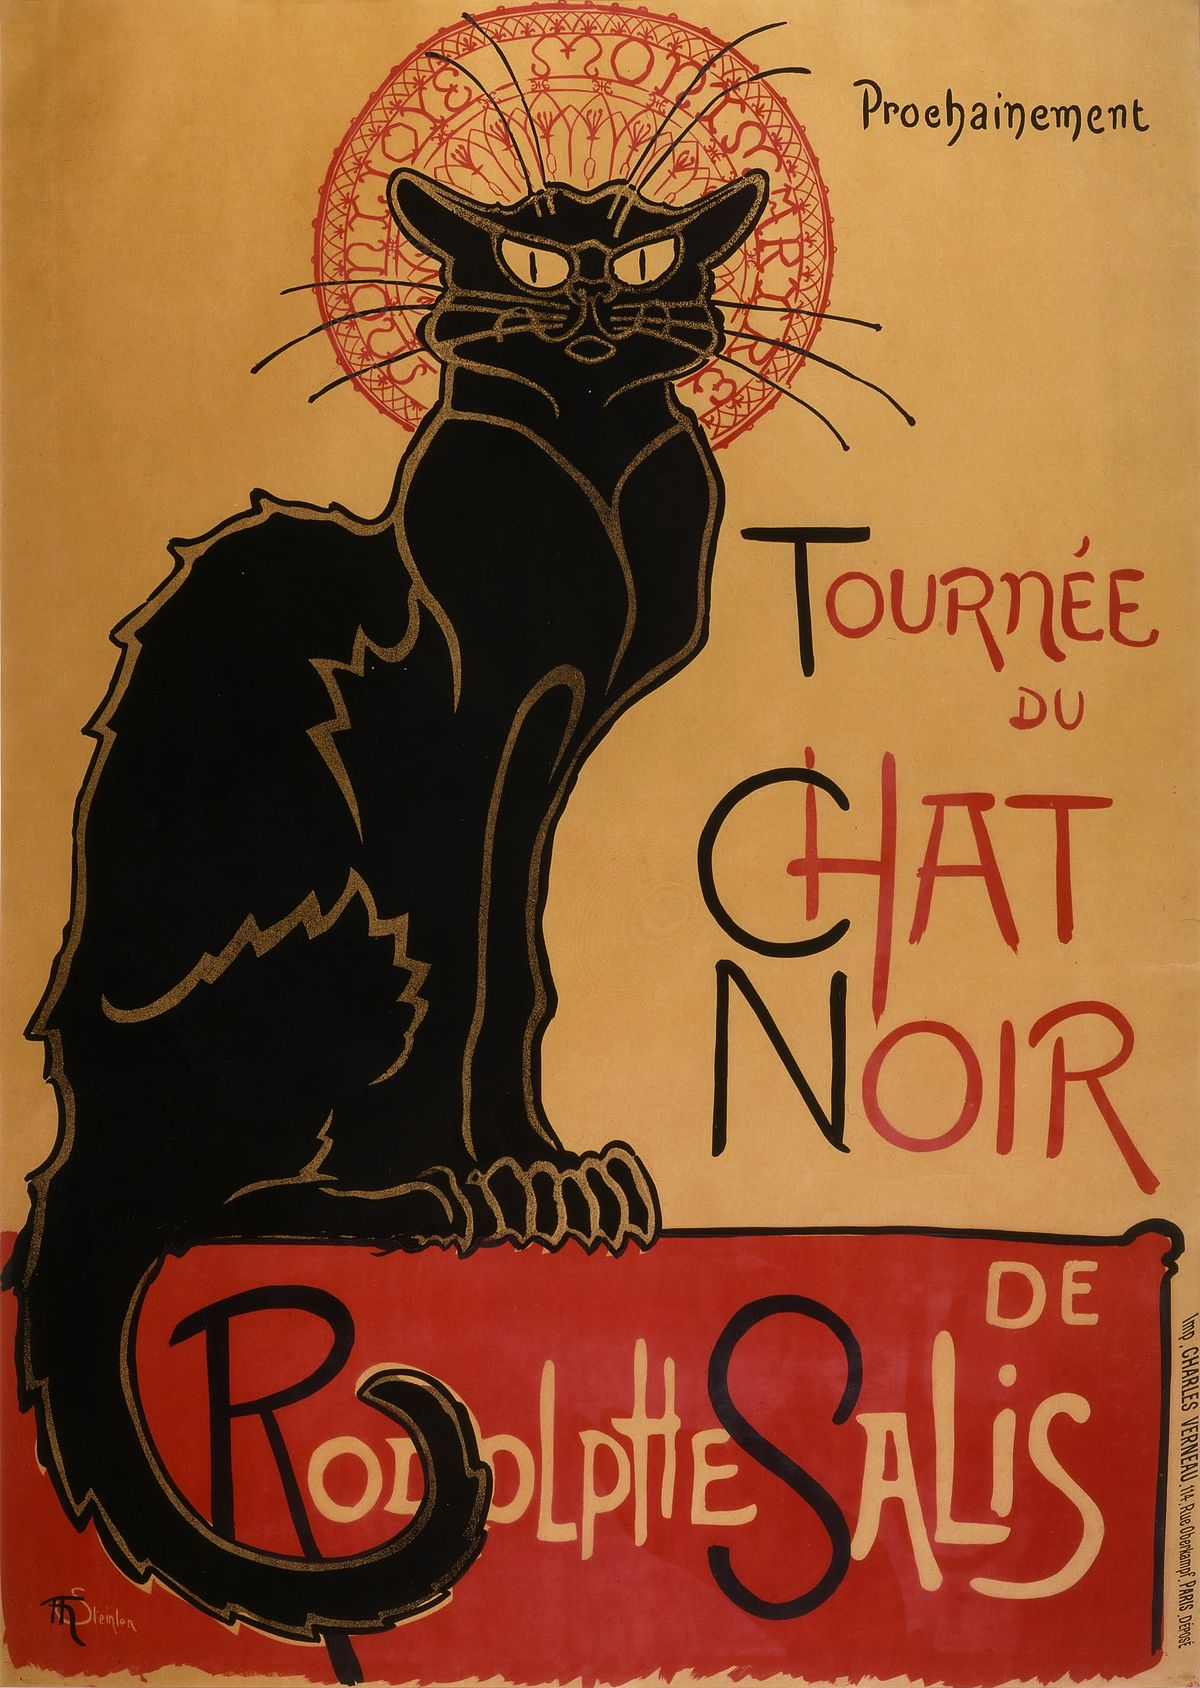 """Le Chat Noir  (""""The Black Cat"""") was a nineteenth-century entertainment establishment, in the bohemian Montmartre district of Paris. It opened on 18 November 1881 at 84 Boulevard de Rochechouart by the impresario Rodolphe Salis, and closed in 1897 not long after Salis' death."""